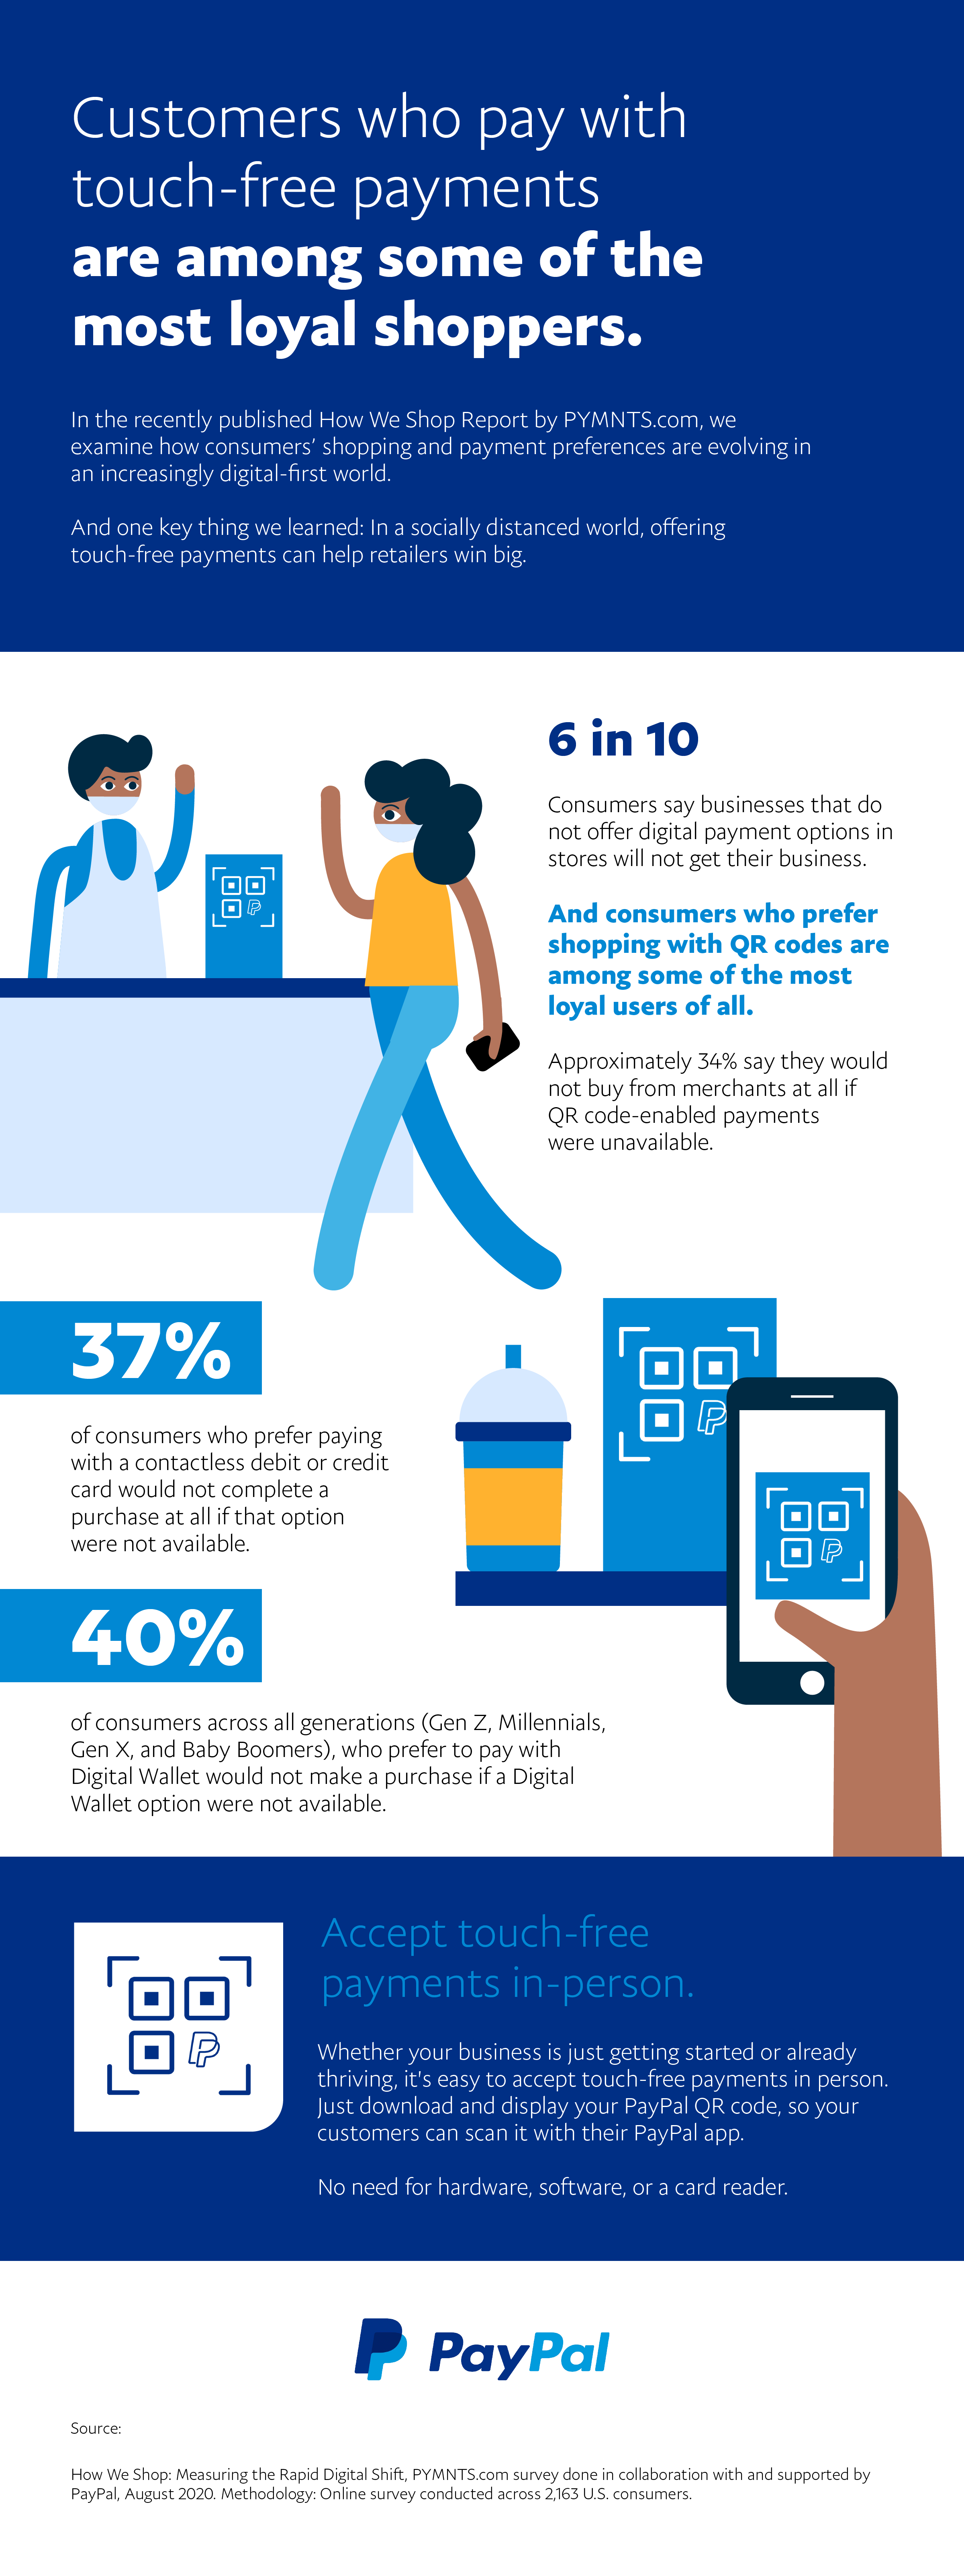 In a recently published How We Shop Report by PYMNTS.com, we examine how consumers' shopping and payment preferences are evolving in an increasingly digital-first world. And one key thing we learned: In a socially distanced world, offering touch-free payments can help retailers win big. 6 in 10 consumers say businesses that do not offer digital payment options in stores will not get their business. And consumers who prefer shopping with QR codes are among some of the most loyal users of all. Approximately 34% say they would not buy from merchants at all if QR code-enabled payments were unavailable. 37% of consumers who prefer paying with a contactless debit or credit card would not complete a purchase at all if that option were not available. 40% of consumers across all generations (Gen Z, Millennials, Gen X, and Baby Boomers), who prefer to pay with Digital Wallet would not make a purchase if a Digital Wallet option were not available. Accept touch-free payments in-person. Whether your business is just getting started or already thriving, it's easy to accept touch-free payments in person. Just download and display your PayPal QR code, so your customers can scan it with their PayPal app. No need for business, software, or a card reader.